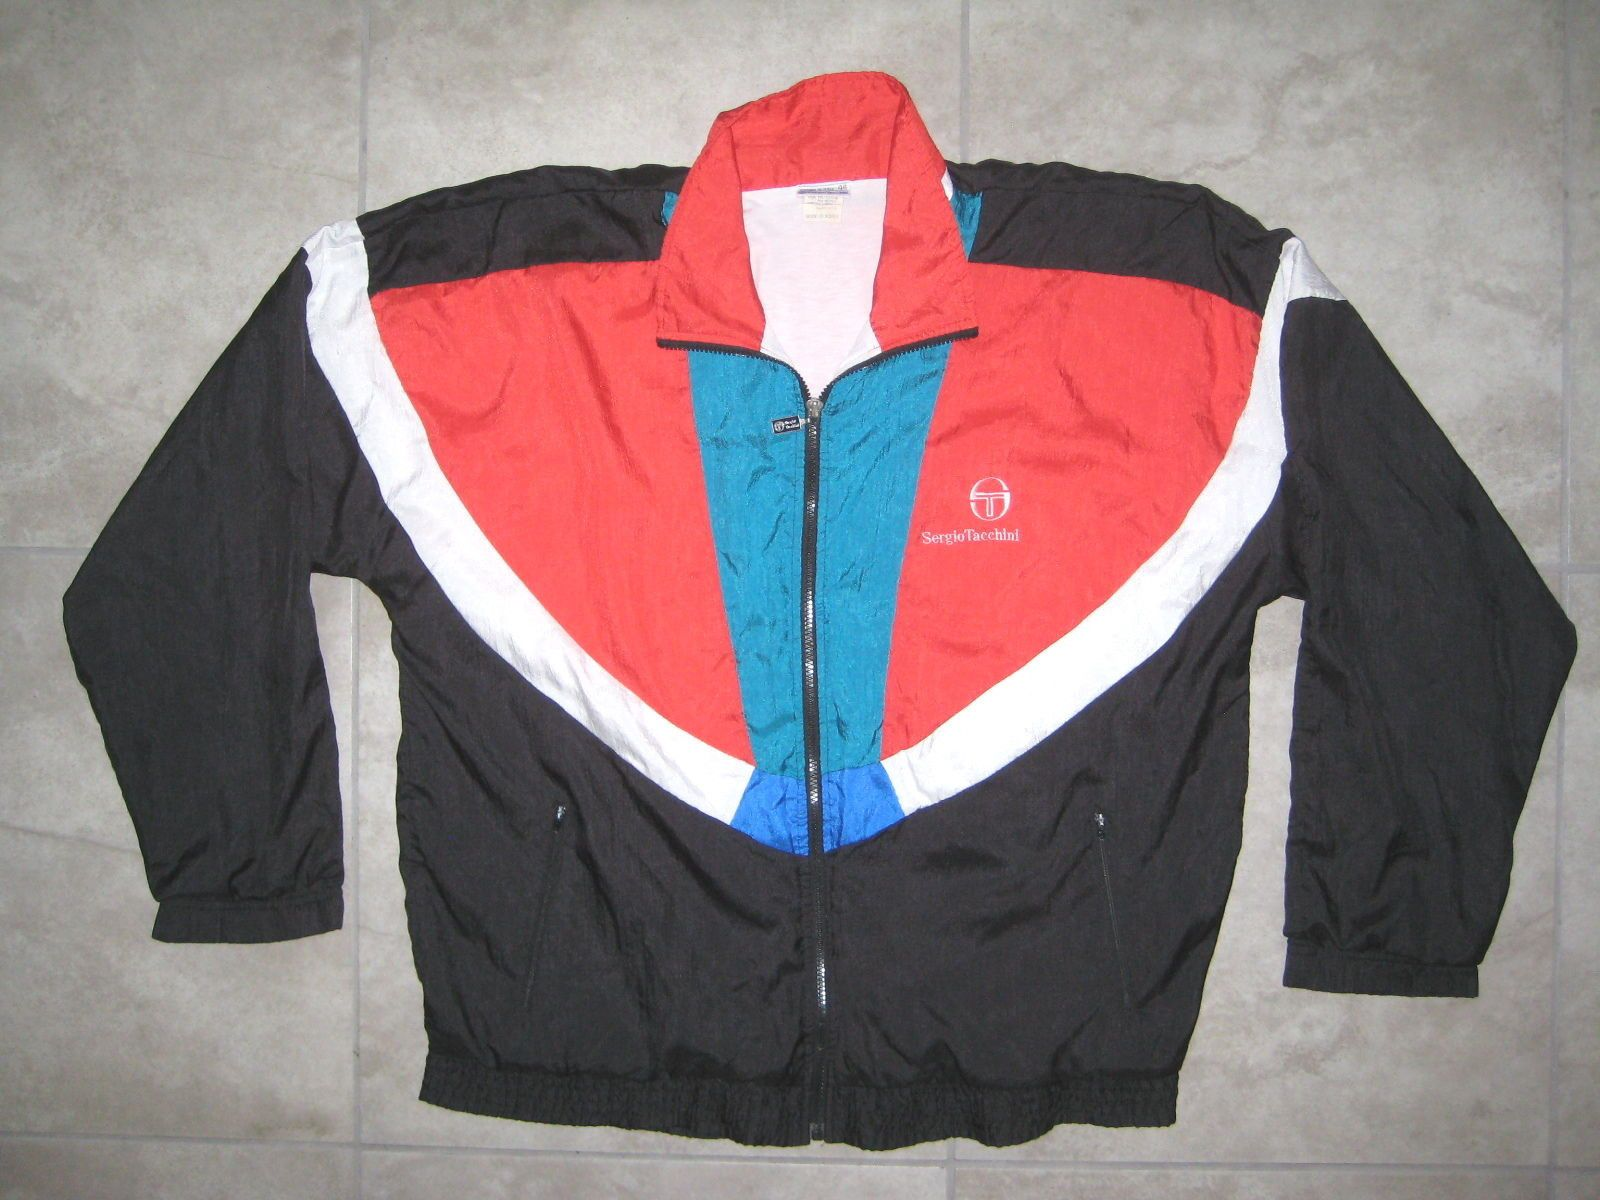 b4e86fb0c Colors: Red Black Blue White. Item is preowned and used but in great  overall condition. NO rips or tears or bad odors. Zipper is missing some  paint.